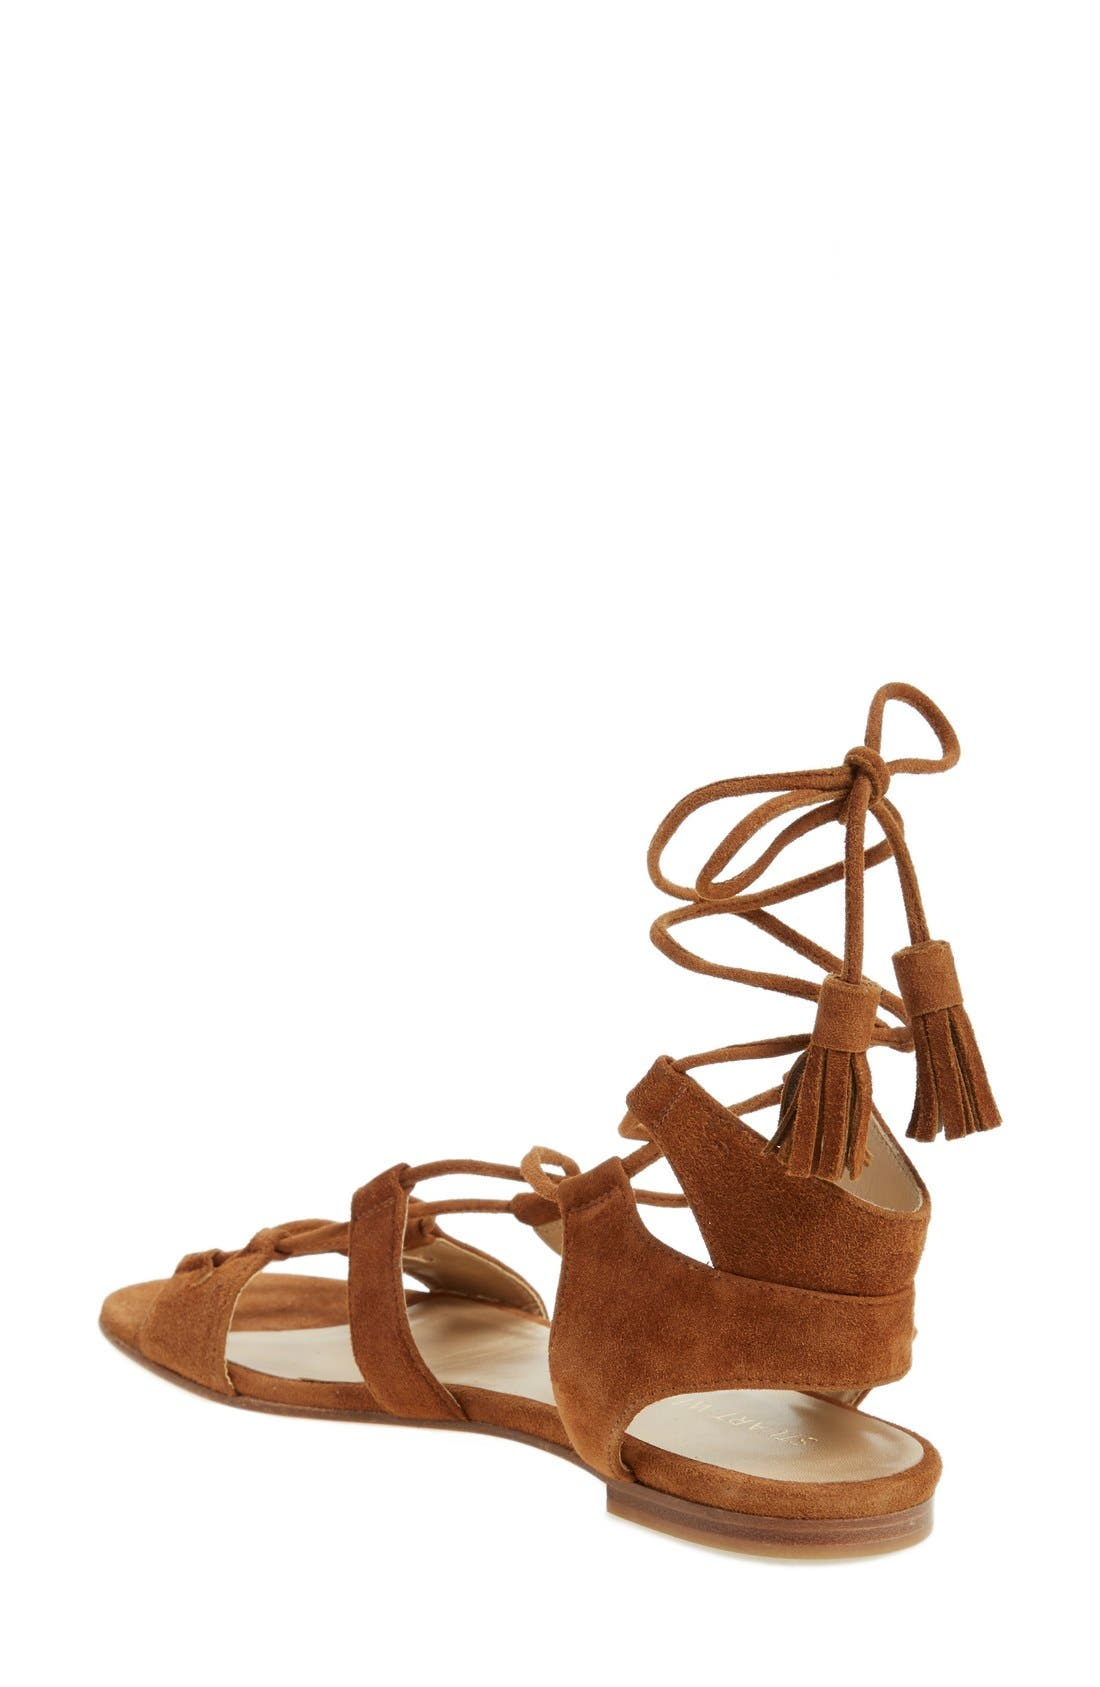 'Romanflat' Ghillie Sandal,                             Alternate thumbnail 2, color,                             Amaretto Suede